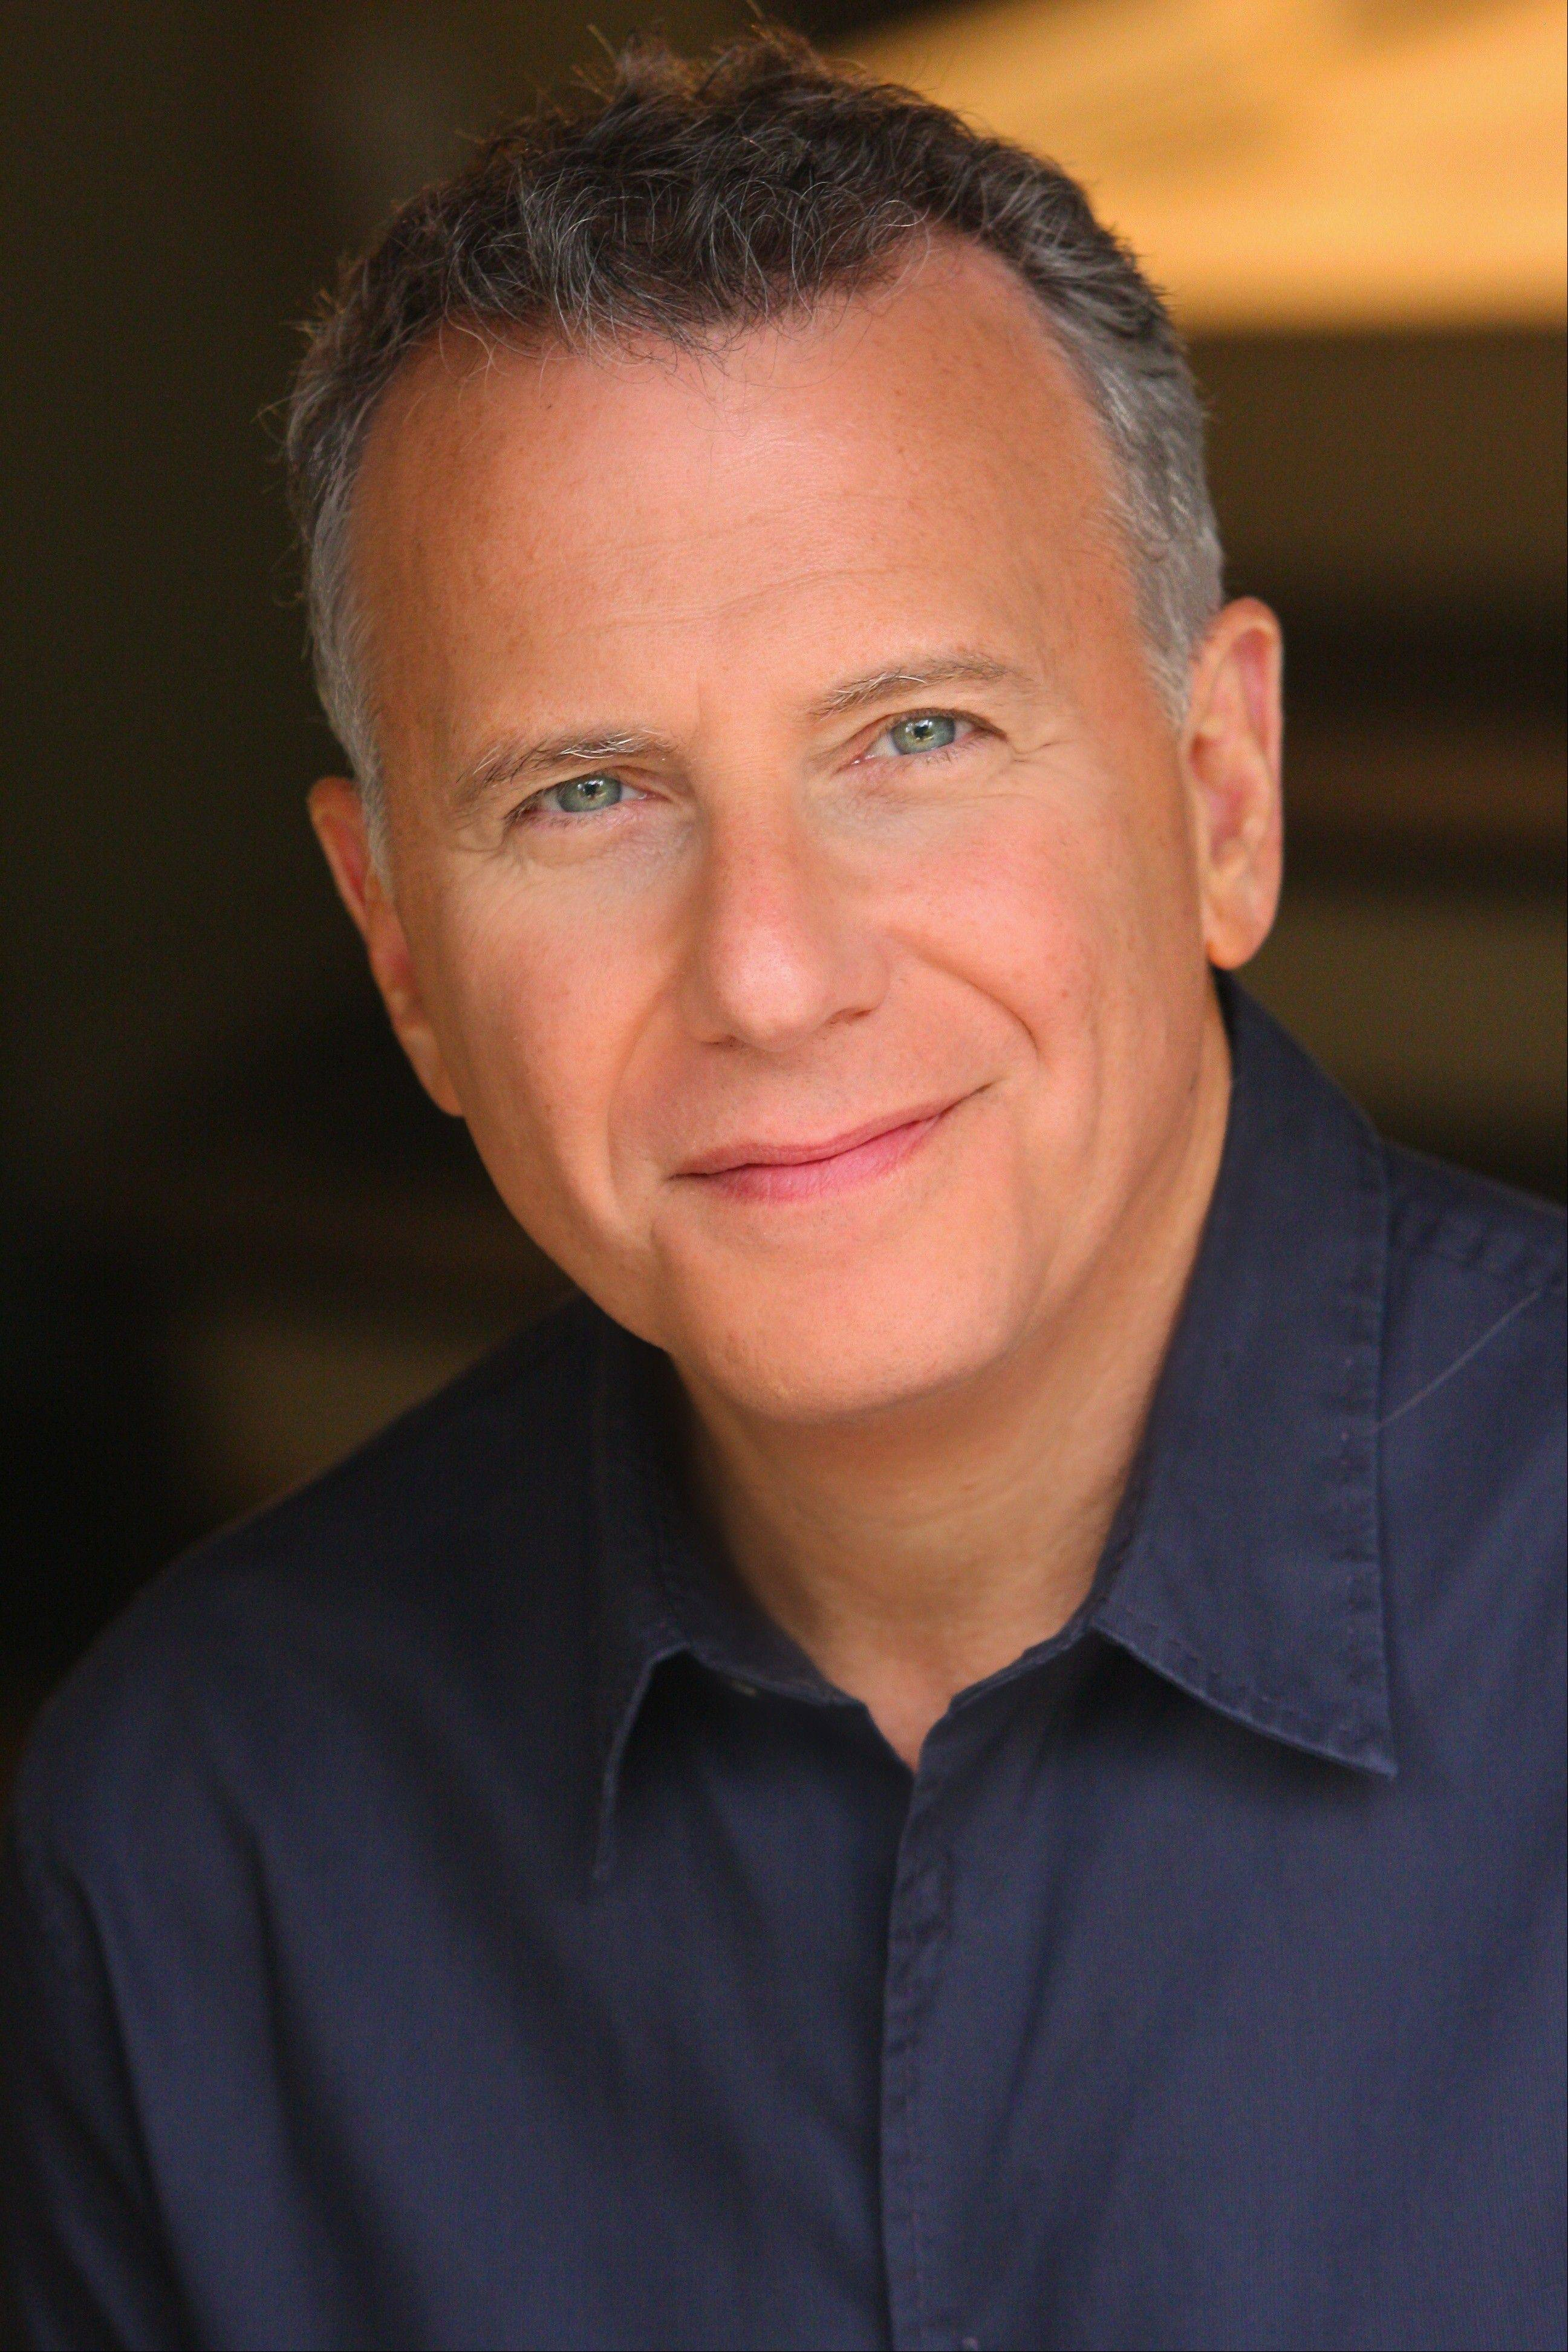 Comedian Paul Reiser is set to headline on Friday and Saturday, Jan. 18-19, at Zanies in Rosemont.